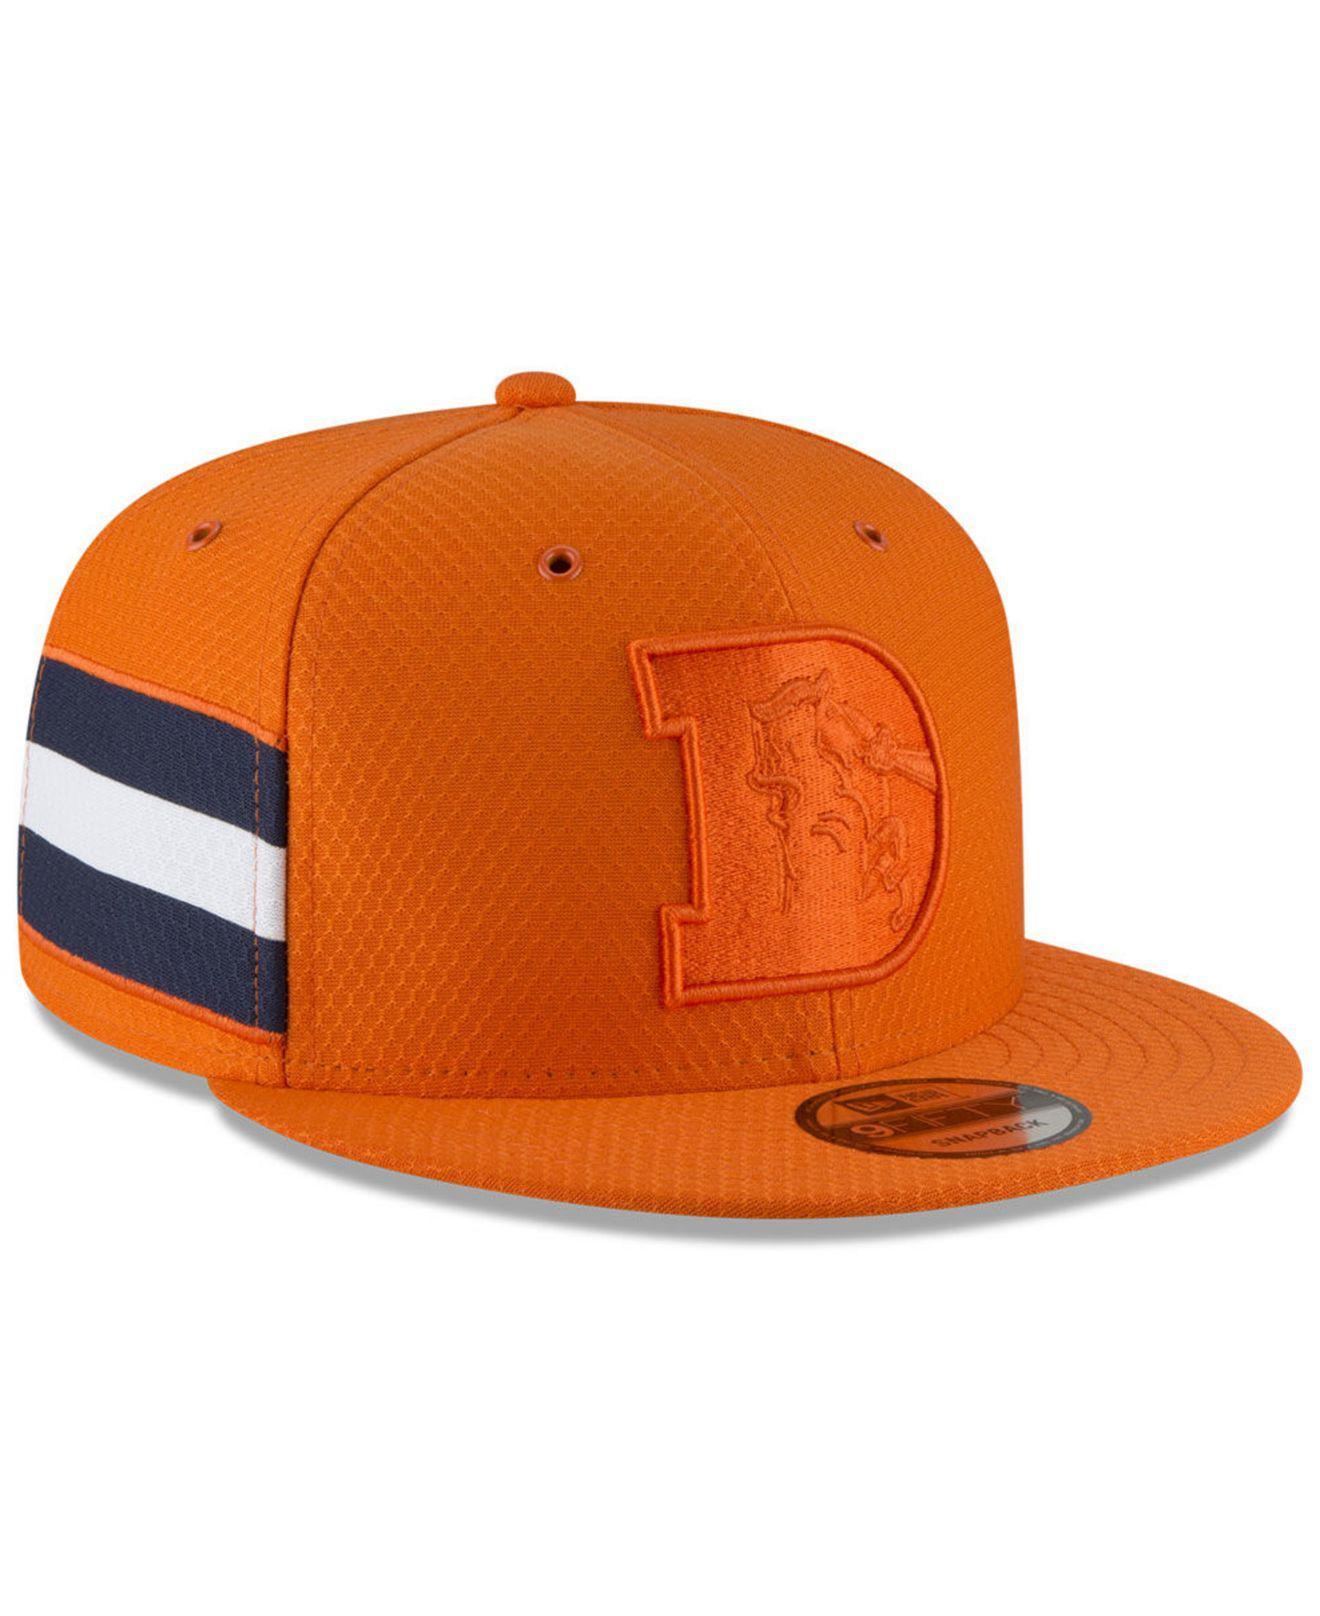 fa49fc21de6 ... cleveland browns new era brown 2017 color rush 9fifty snapback  adjustable hat 62a0a ce994  new zealand field color rush 9fifty snapback  cap for men ...